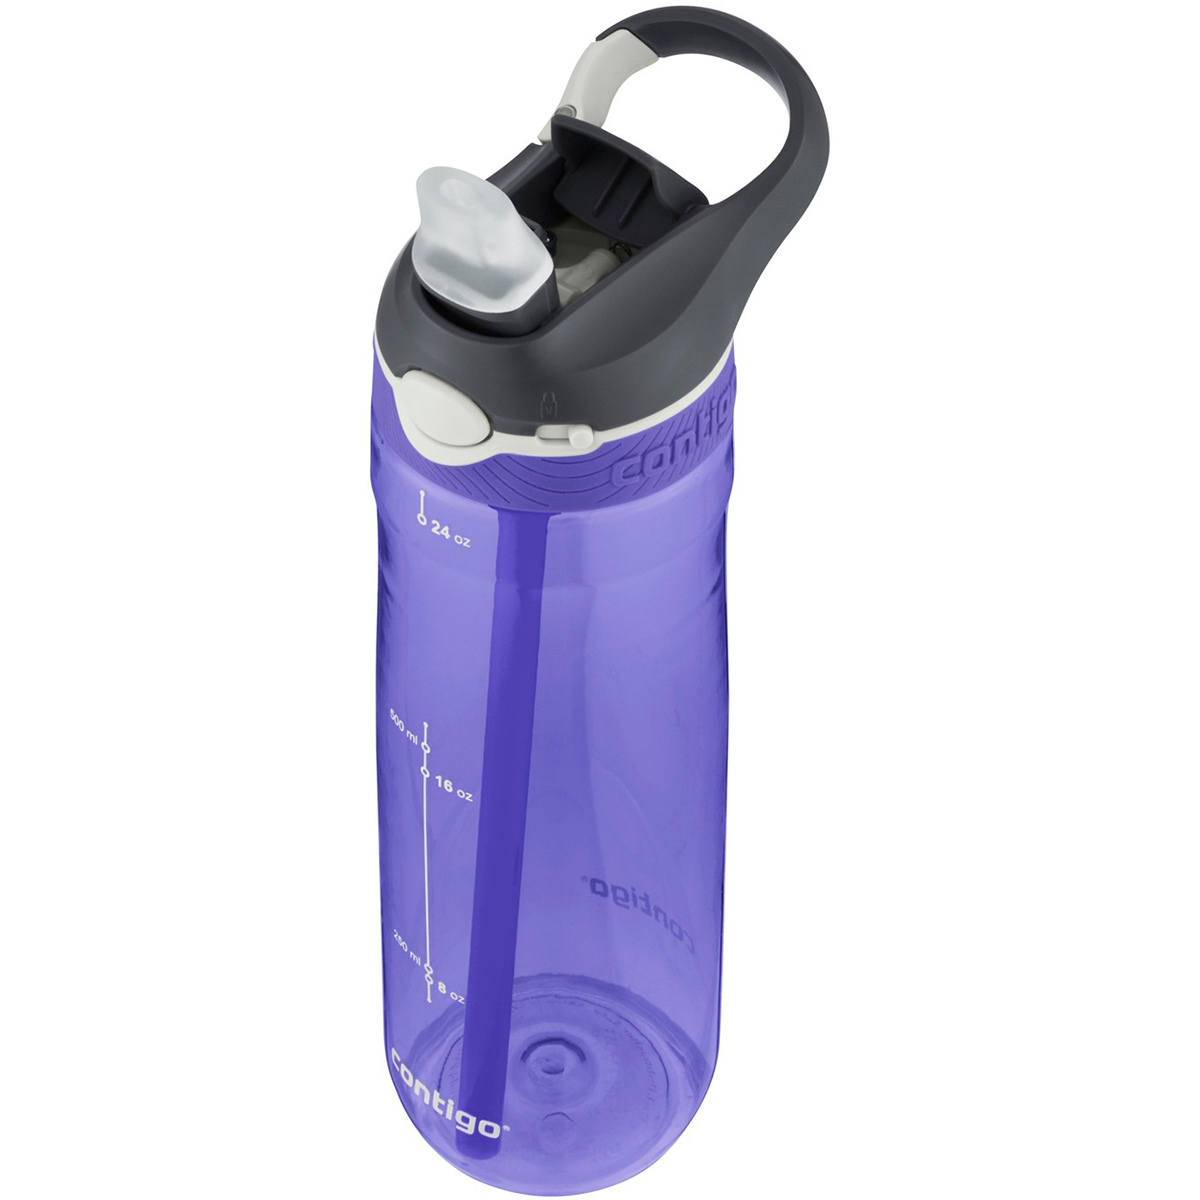 Contigo-24-oz-Ashland-Autospout-Water-Bottle Indexbild 6